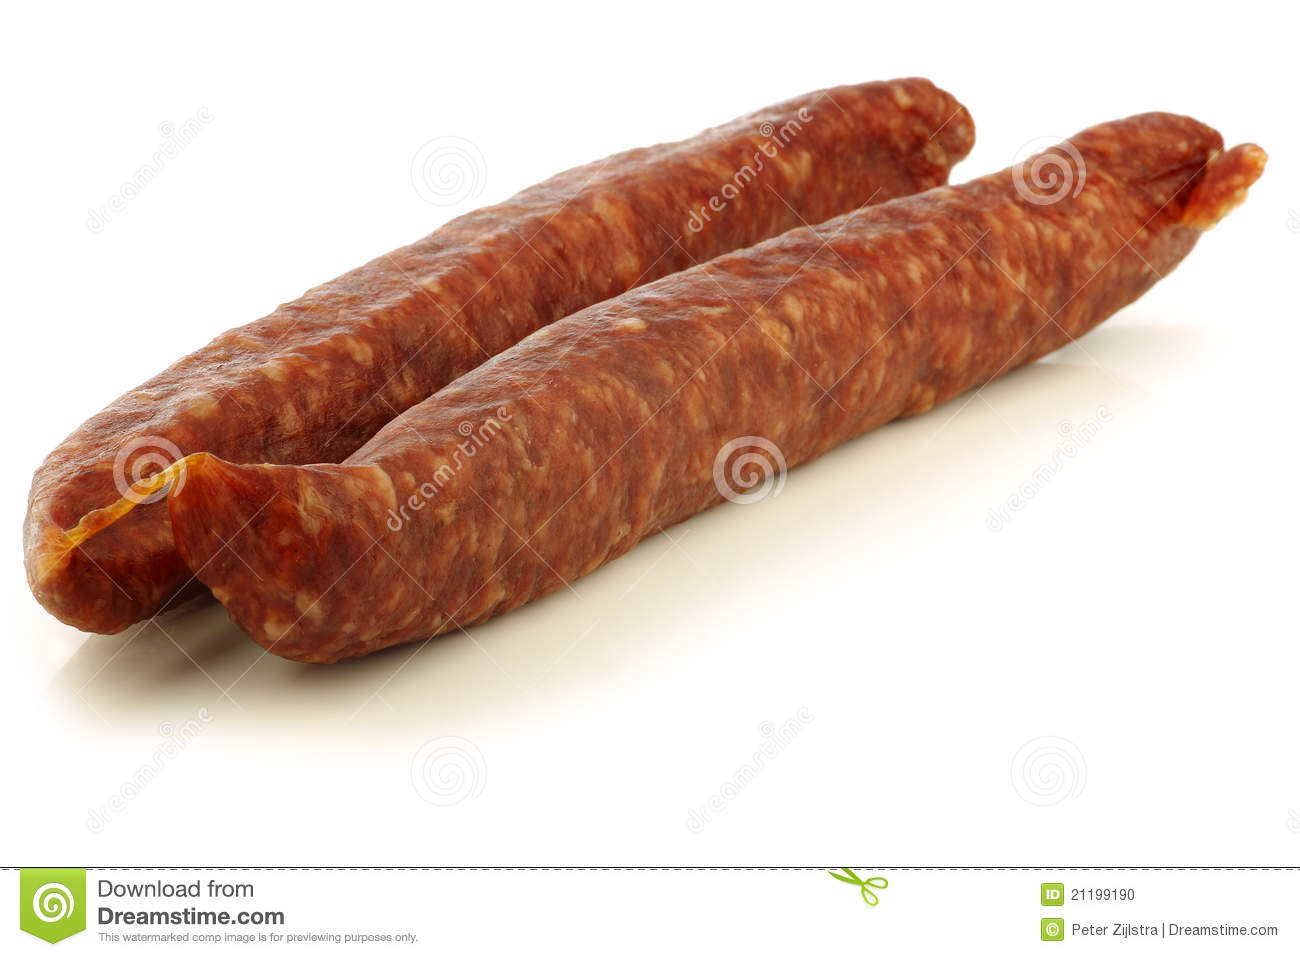 Traditional frisian dried sausages